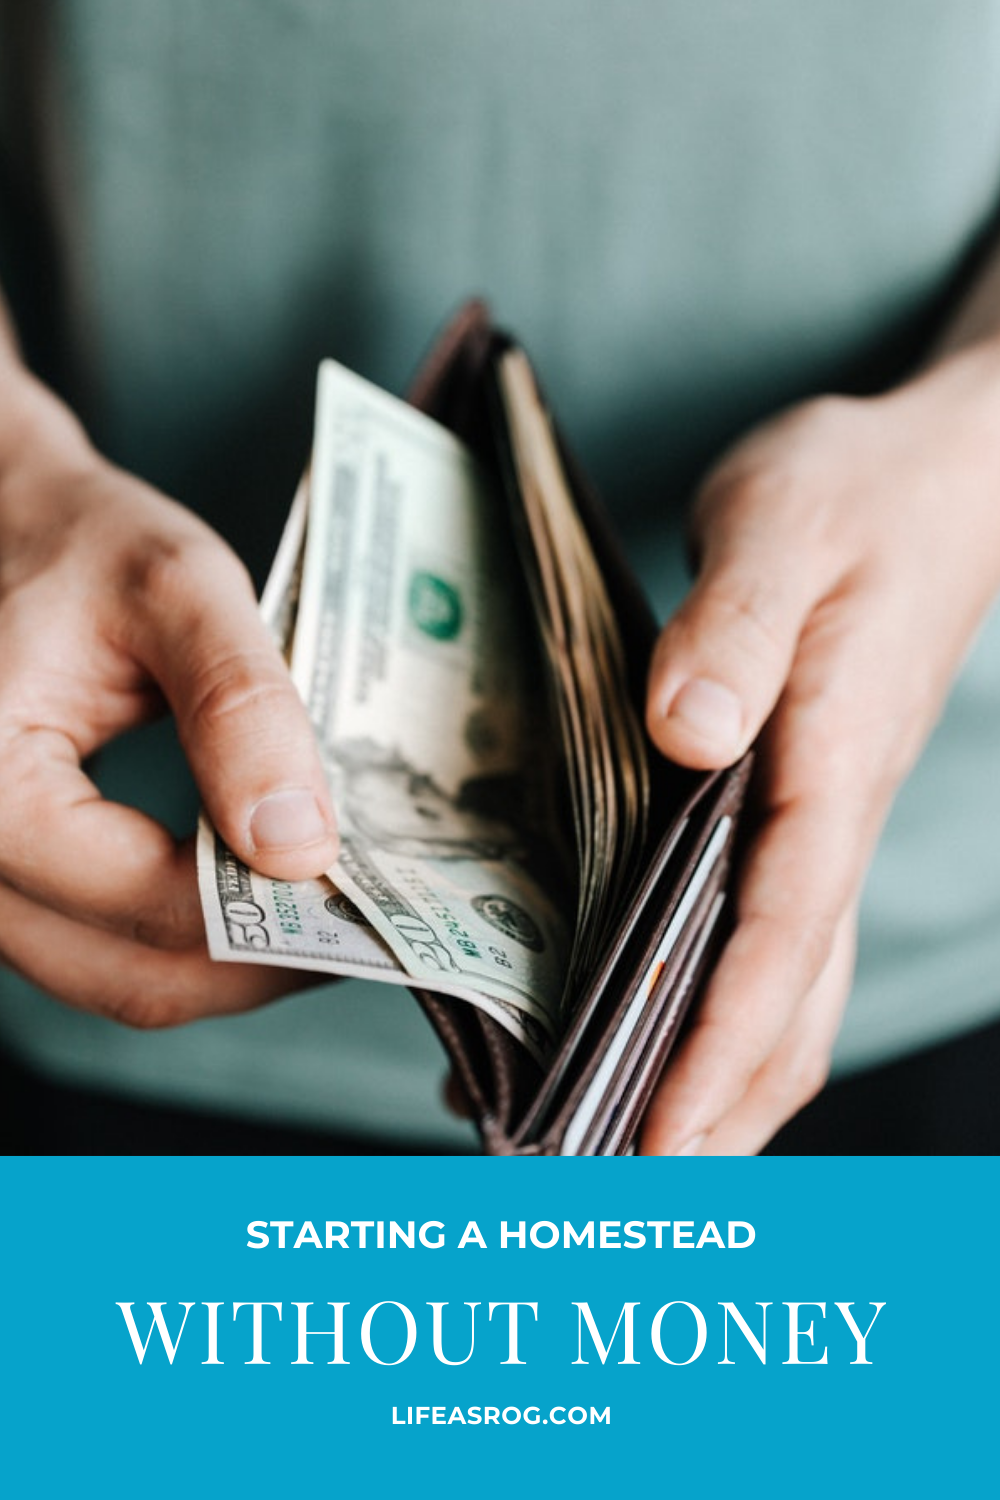 Starting a Homestead Without Money